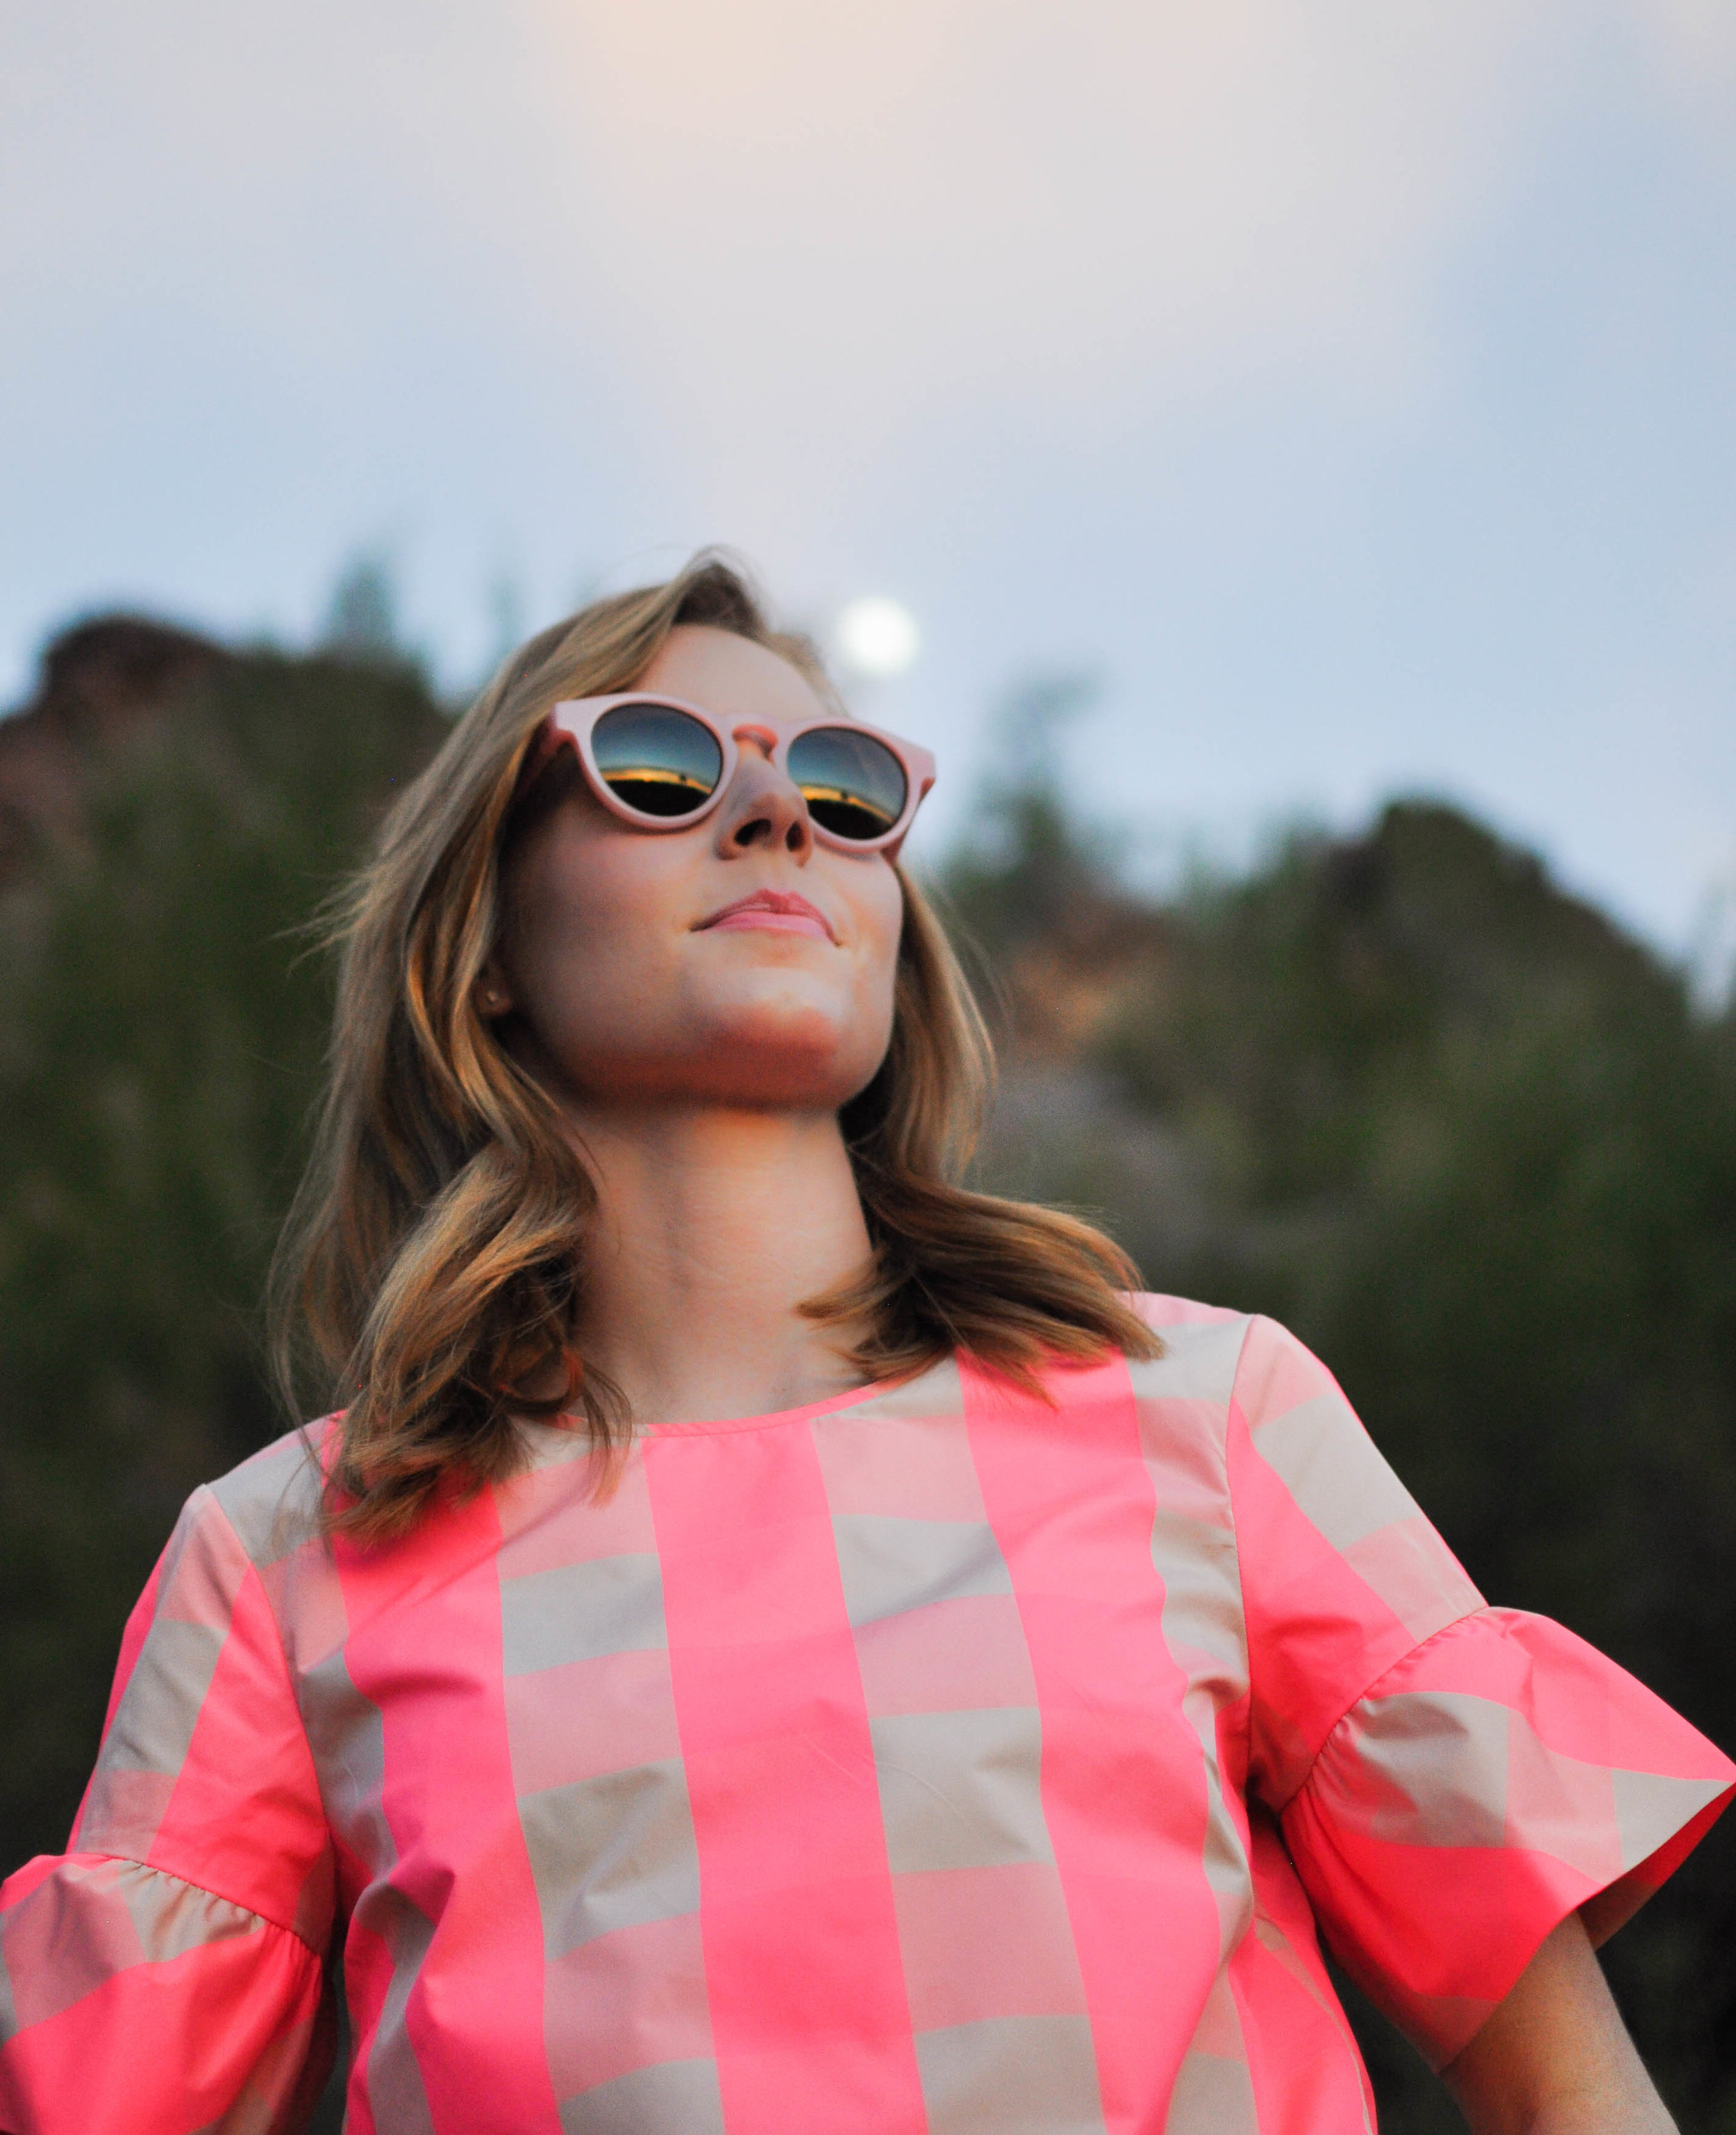 Woman in sunglasses and pink top at sunset